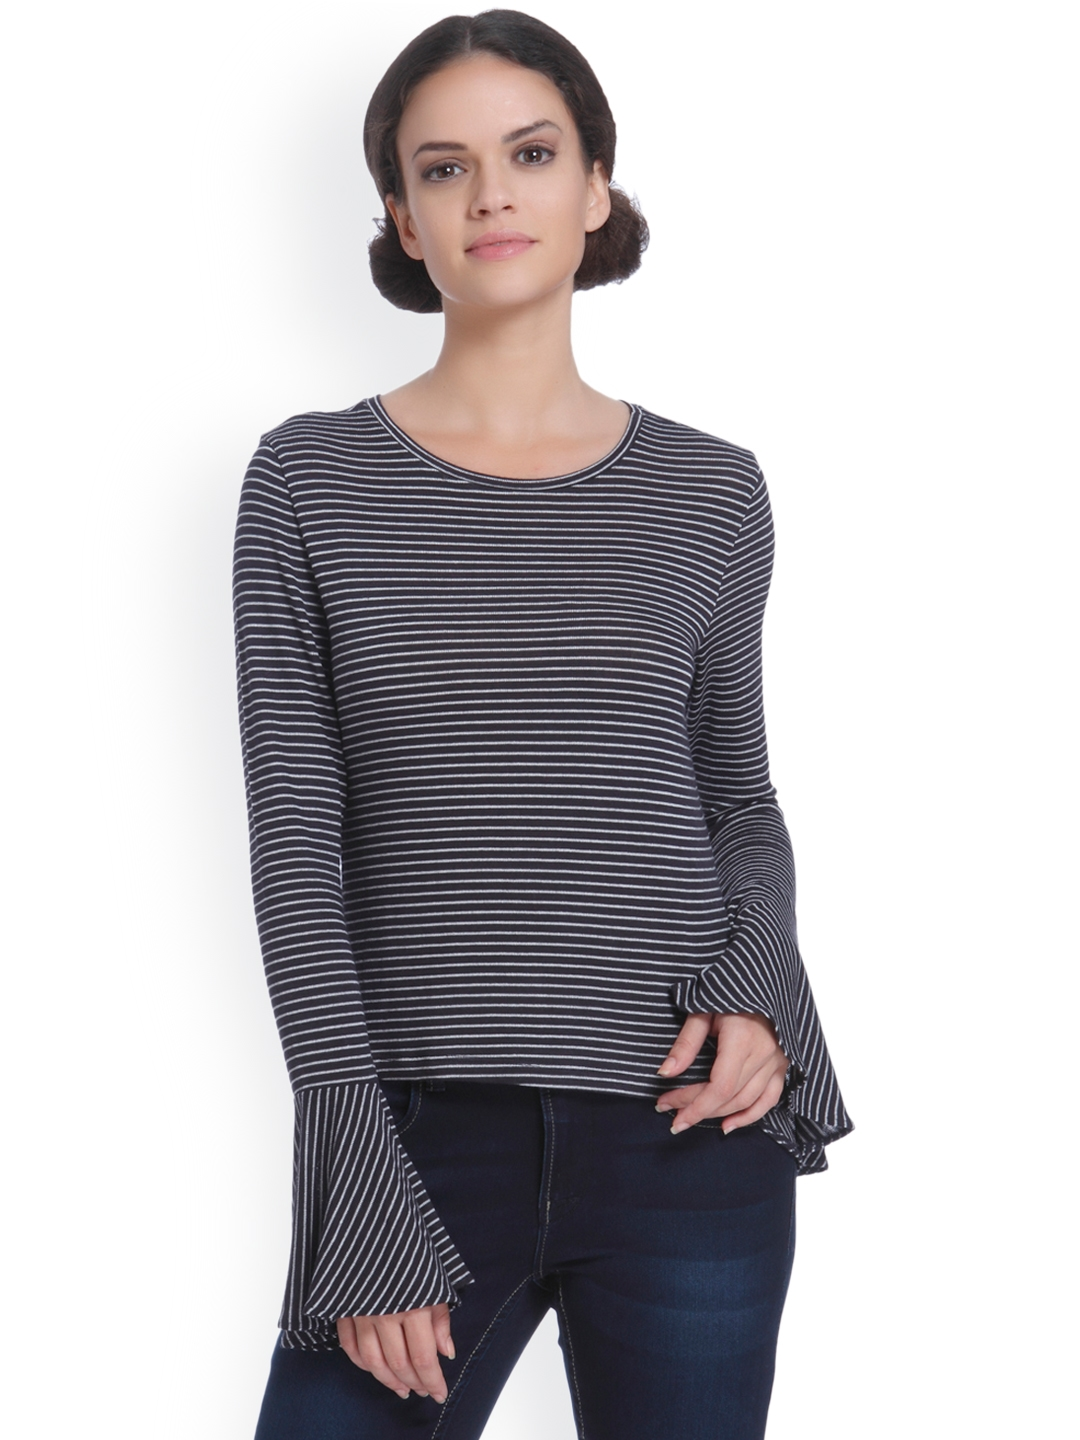 ONLY Women Charcoal Grey   White Striped Top